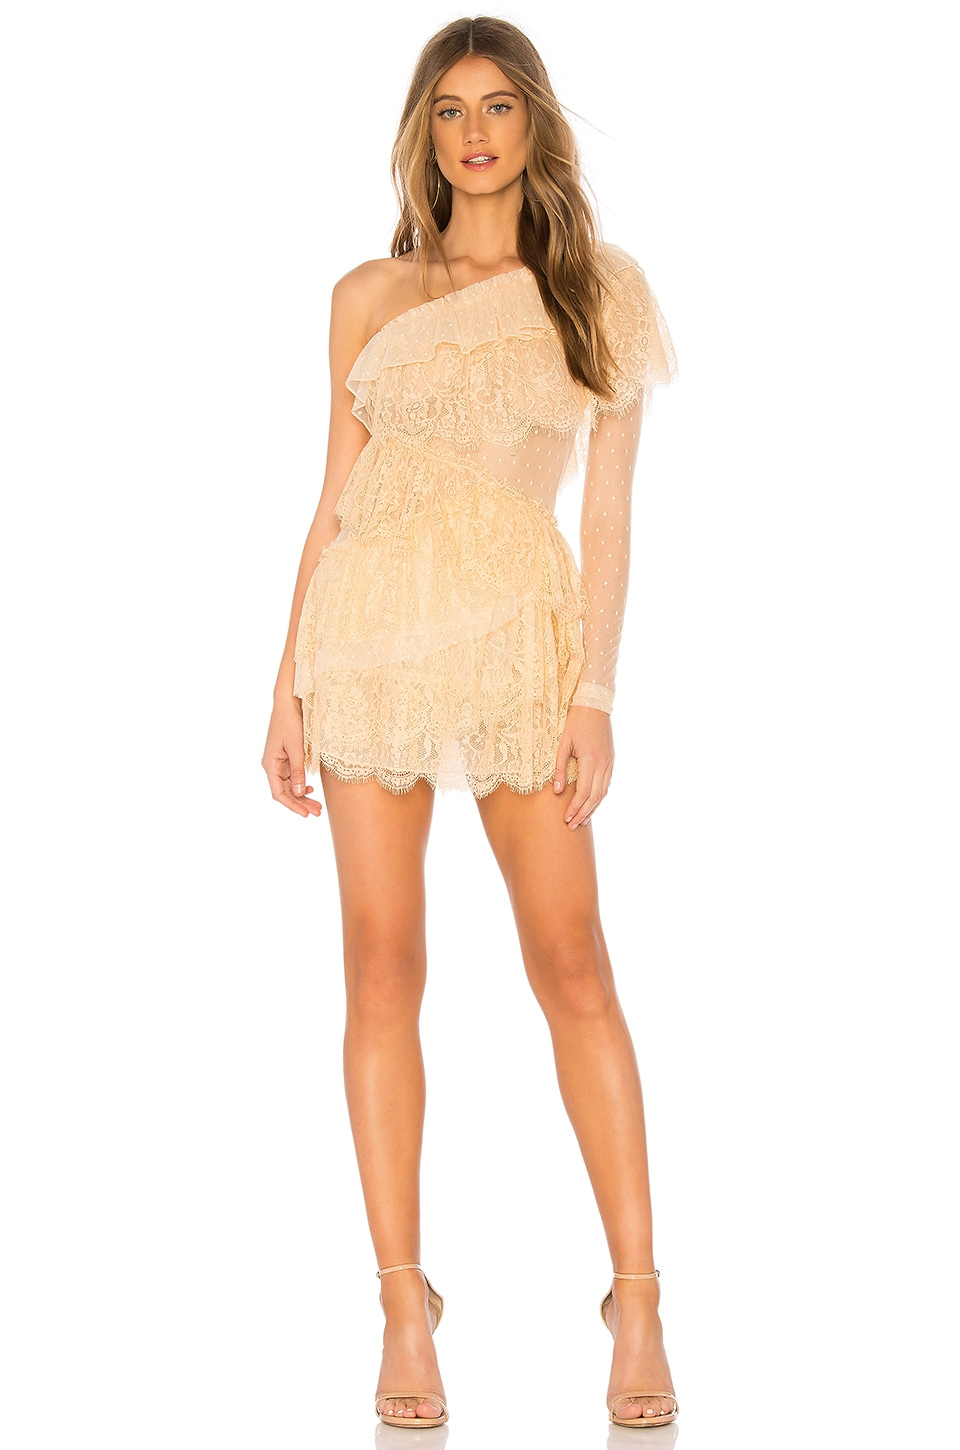 House of Harlow 1960 x REVOLVE Aries Dress in Nude